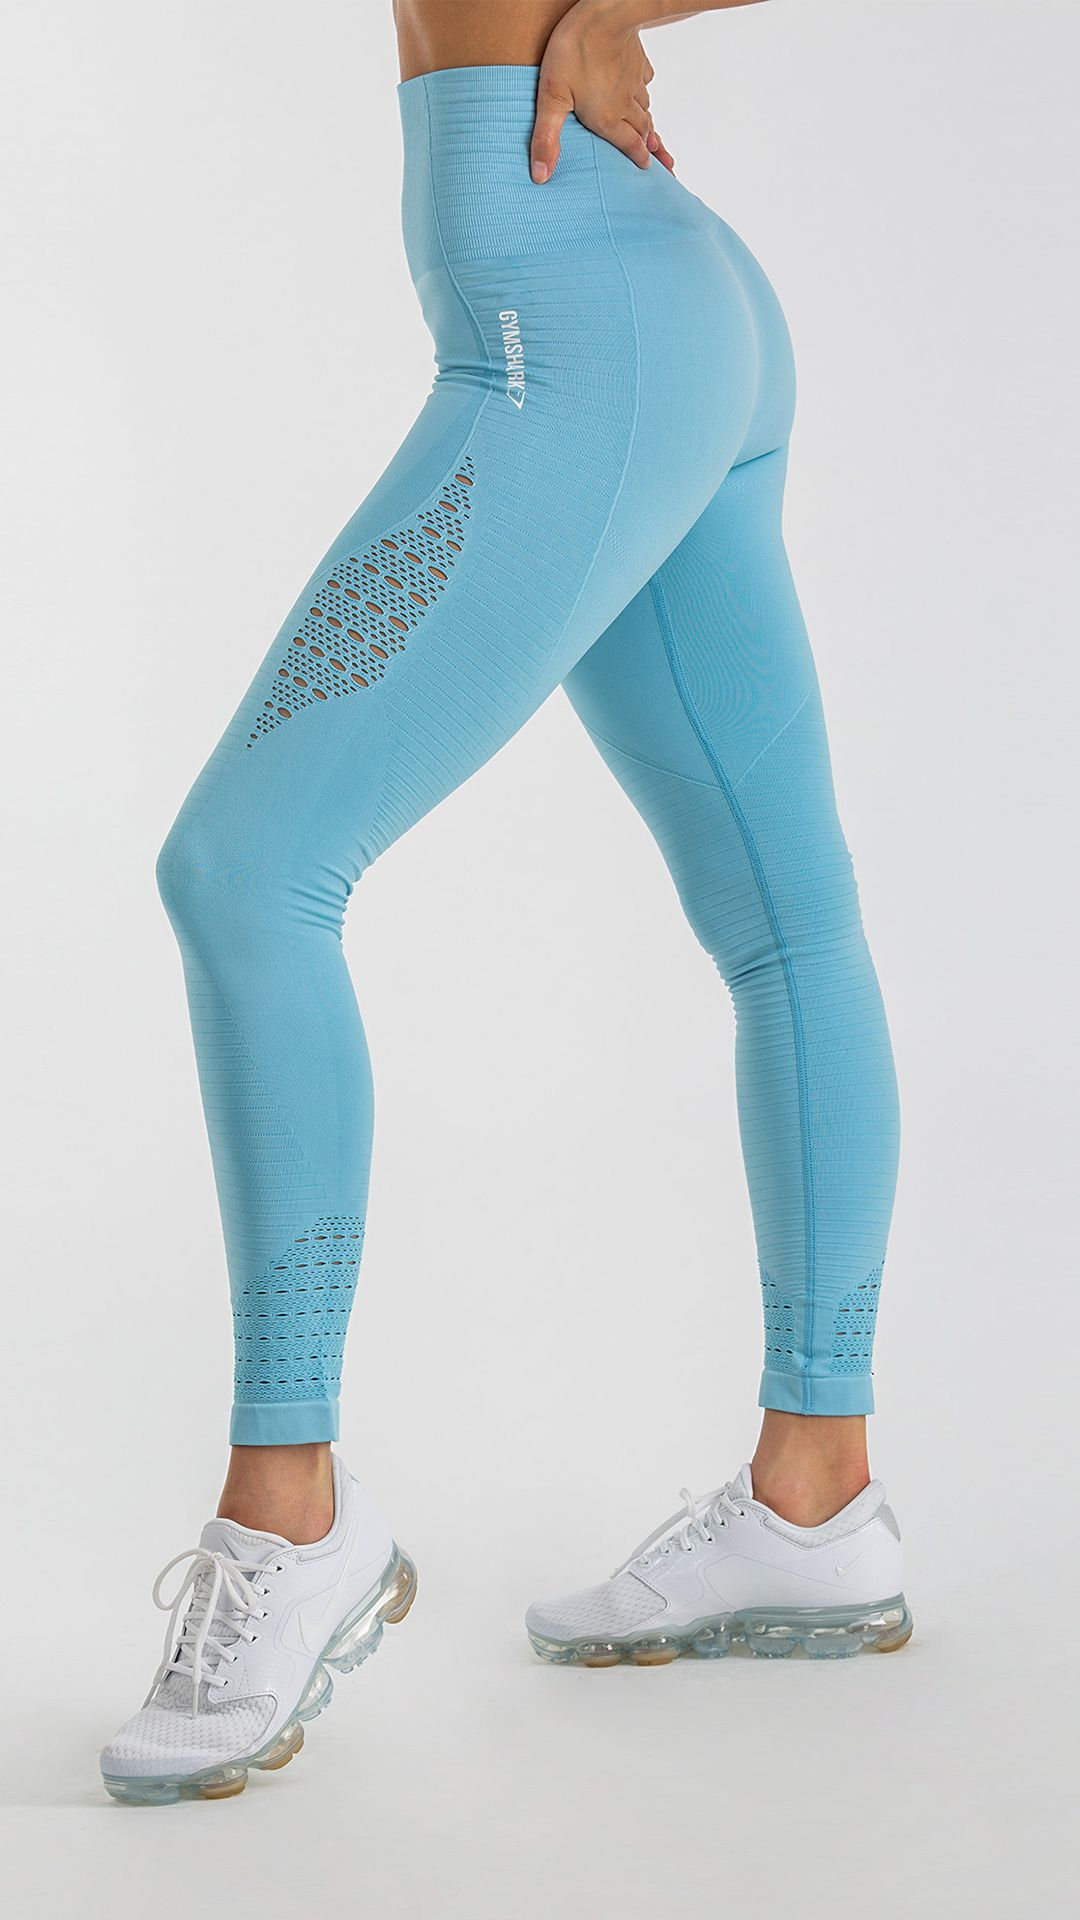 23c1de166d1 Combining beautiful design with our innovative Seamless technology. The  Energy Seamless Leggings feature ribbed detailing woven into luxuriously  soft fabric ...